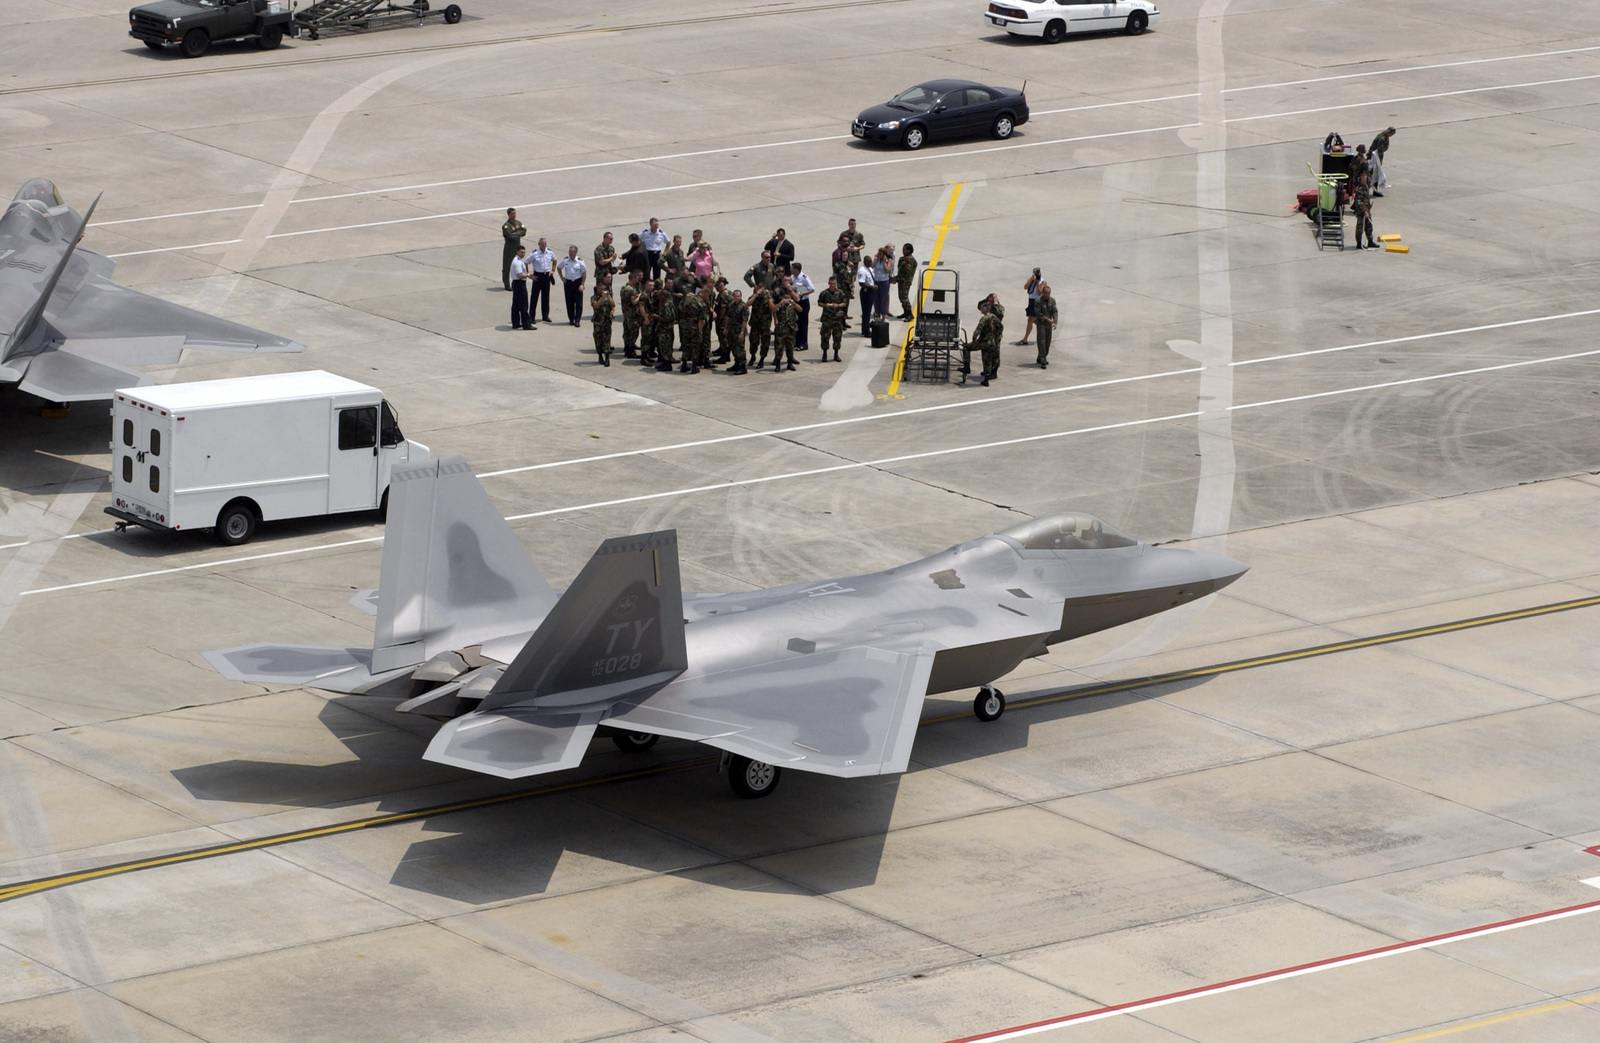 US Air Force (USAF) Major (MAJ) Max Maroska, with the 43rd Fighter Squadron (FS), delivers the newest F/A-22 Raptor to Tyndall Air Force Base (AFB), Florida (FL). This is the squadrons seventh new Raptor. He was met on the ramp by a group of pilots, maintainers and visitors eager to see the newest addition to the squadron